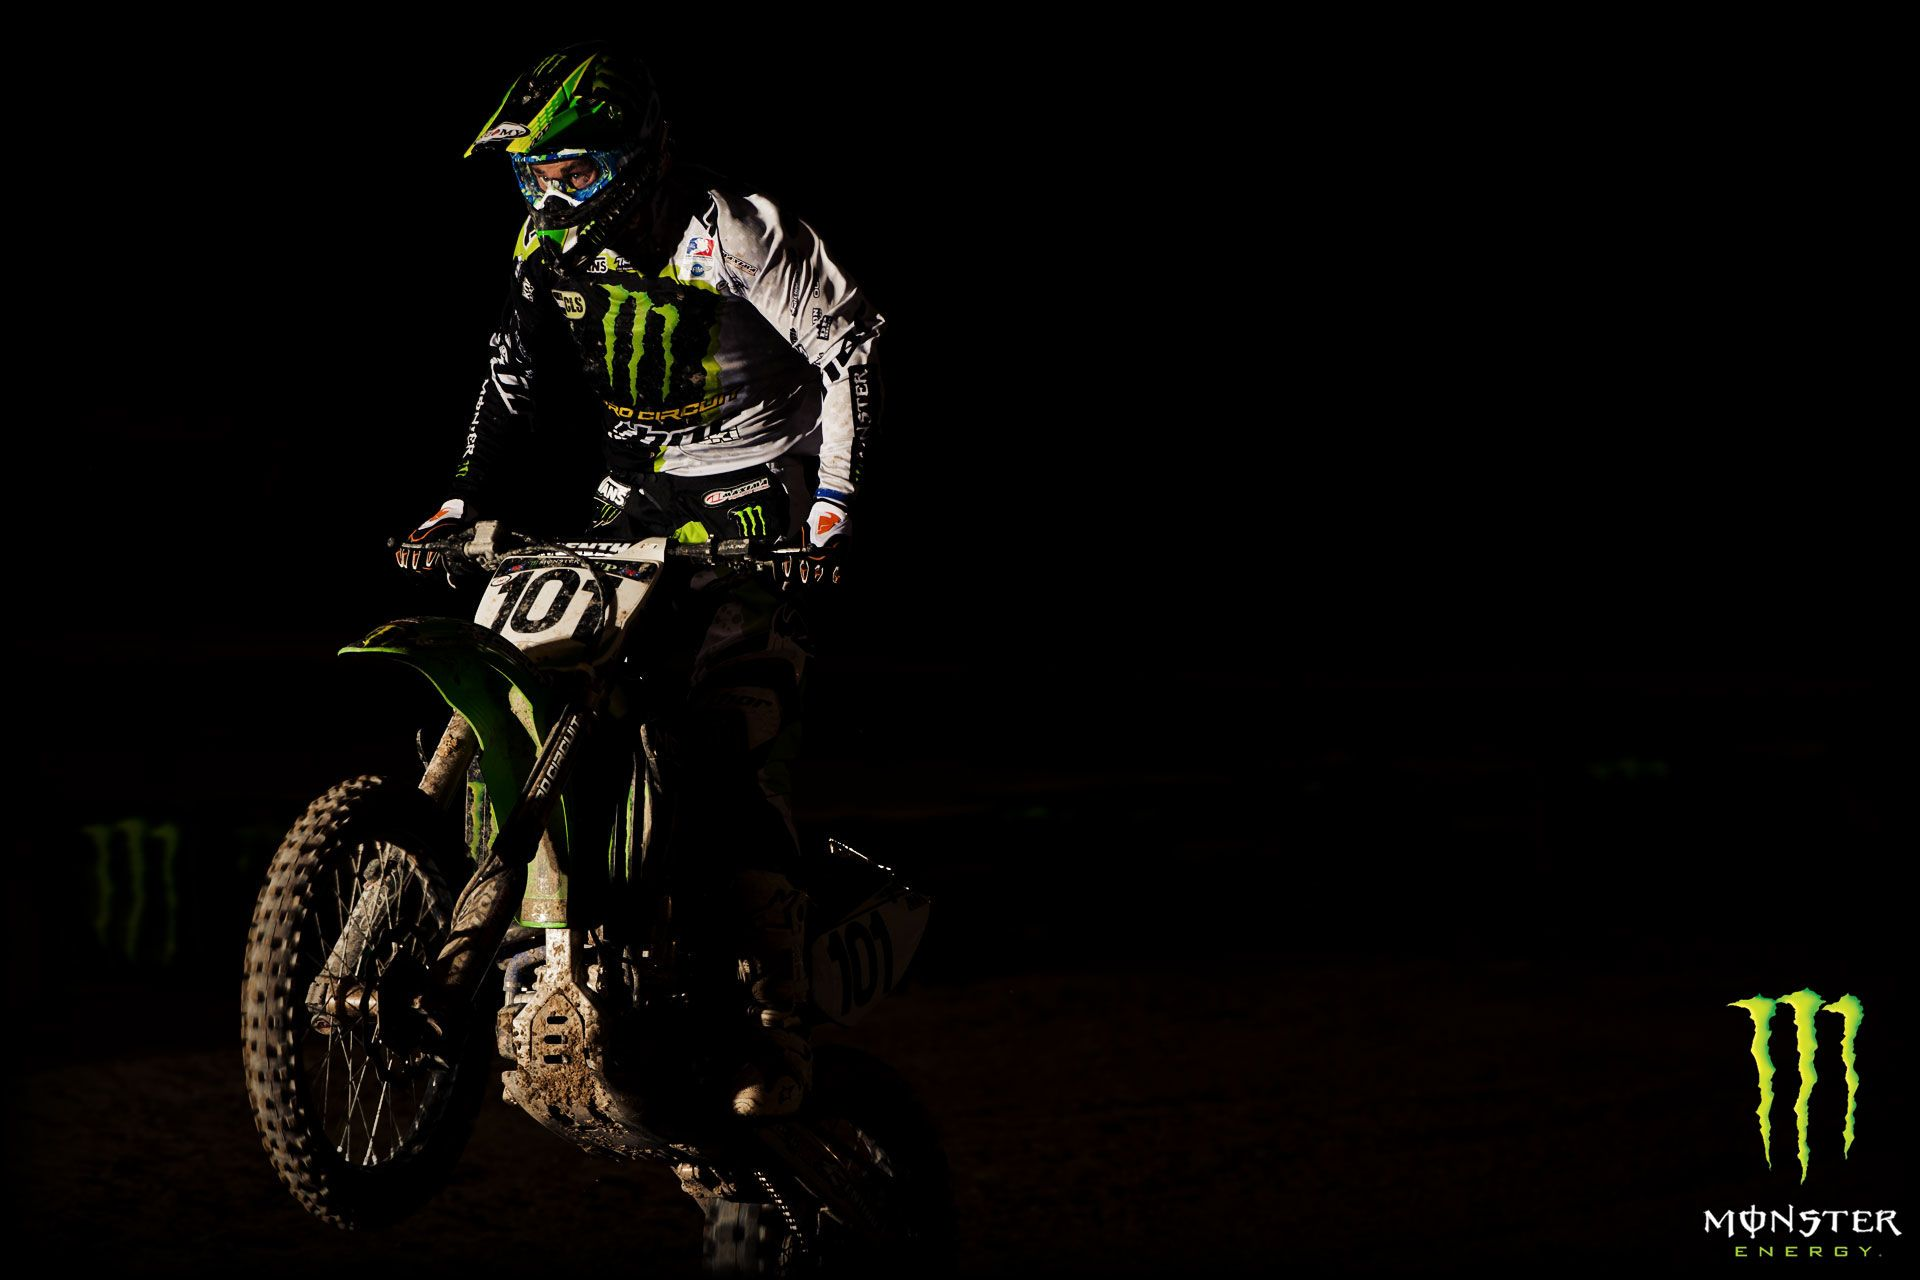 Black Motocross Monster Energy Wallpaper Wallpaper